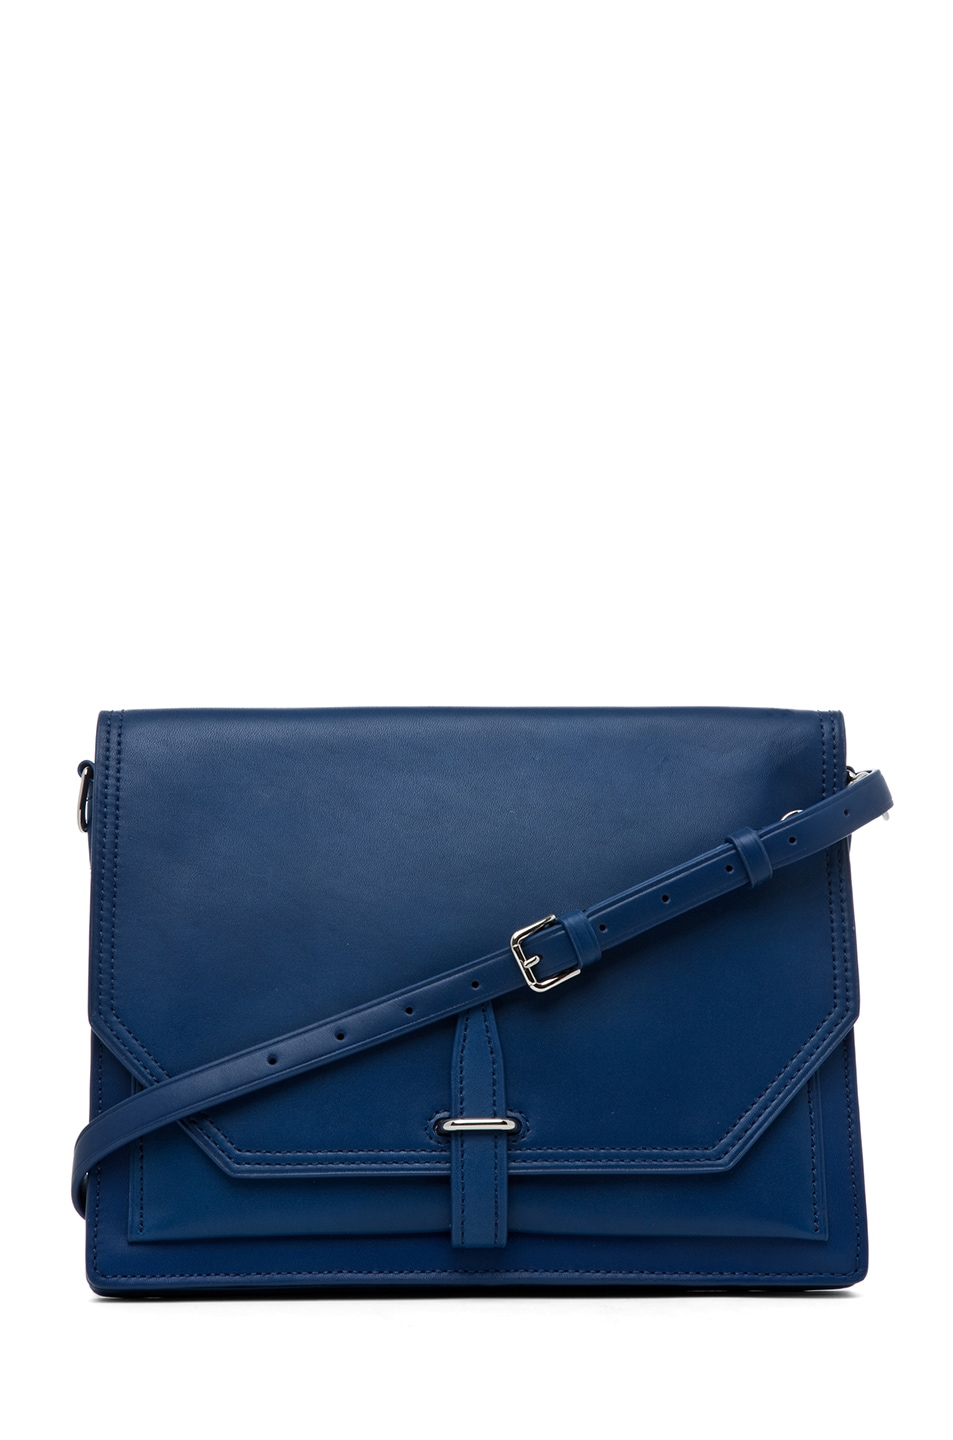 Image 1 of 3.1 phillip lim Polly Double Compartment Crossbody in Cerulean